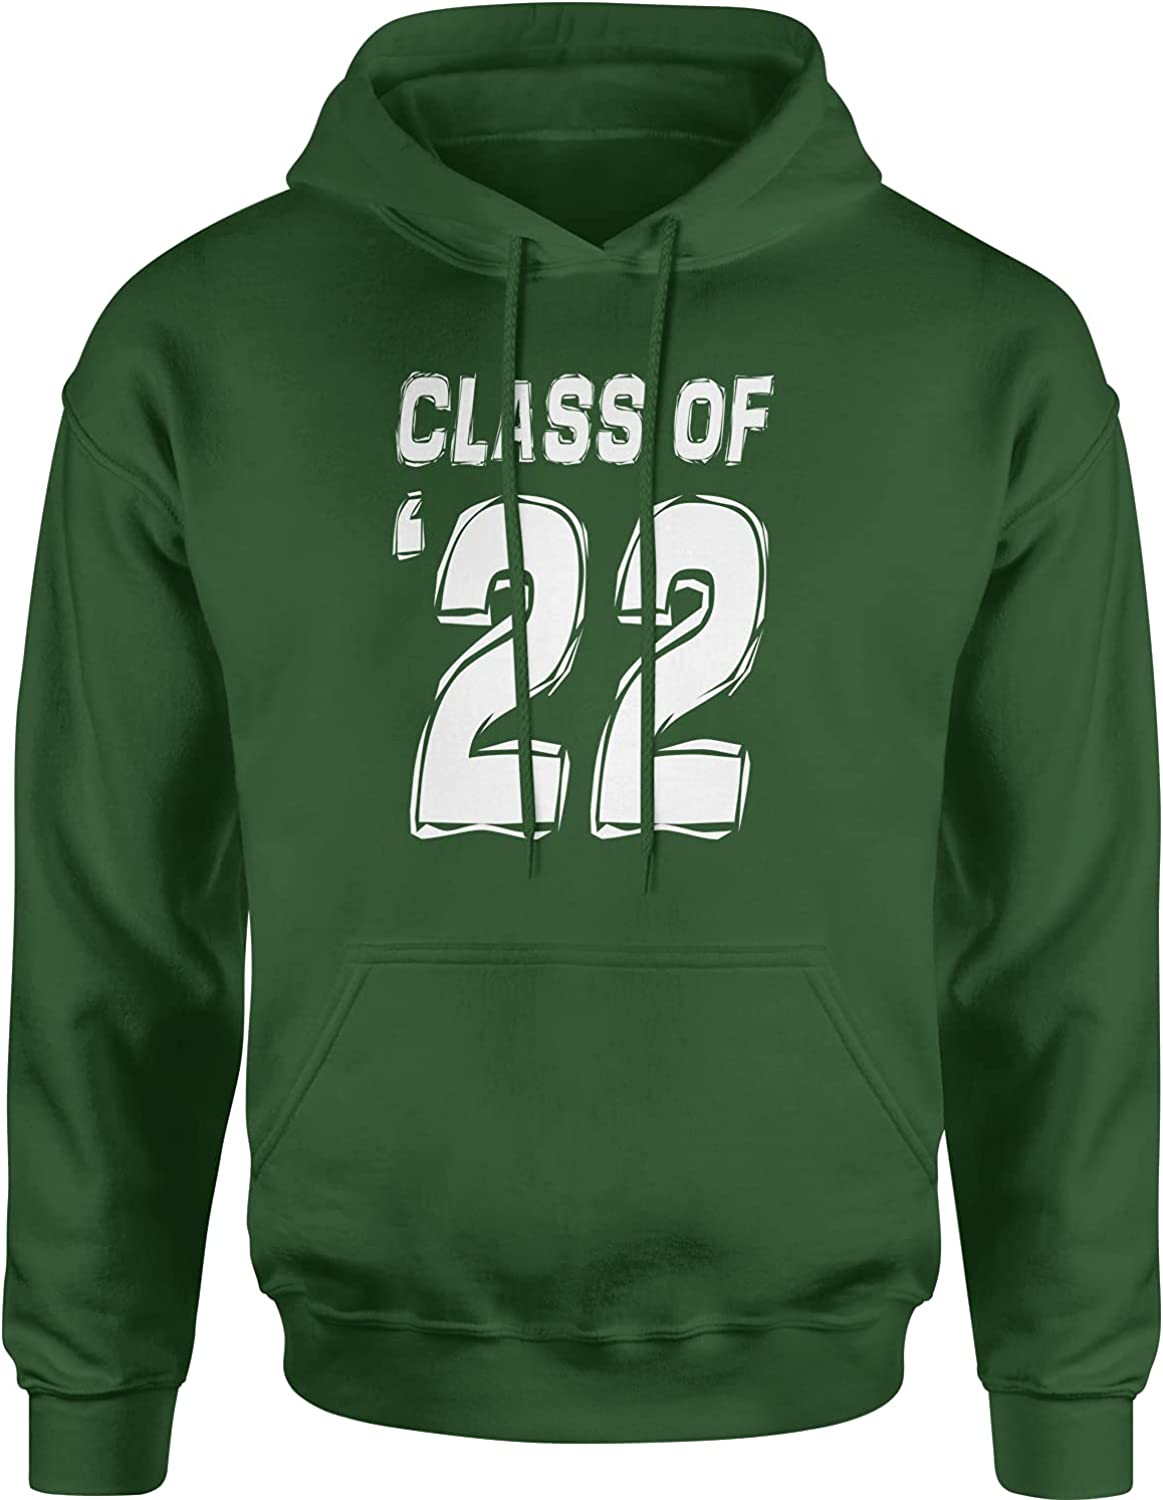 Expression Tees Ranking TOP19 Class of 2022 Adult Graduation supreme Unisex Hoodie